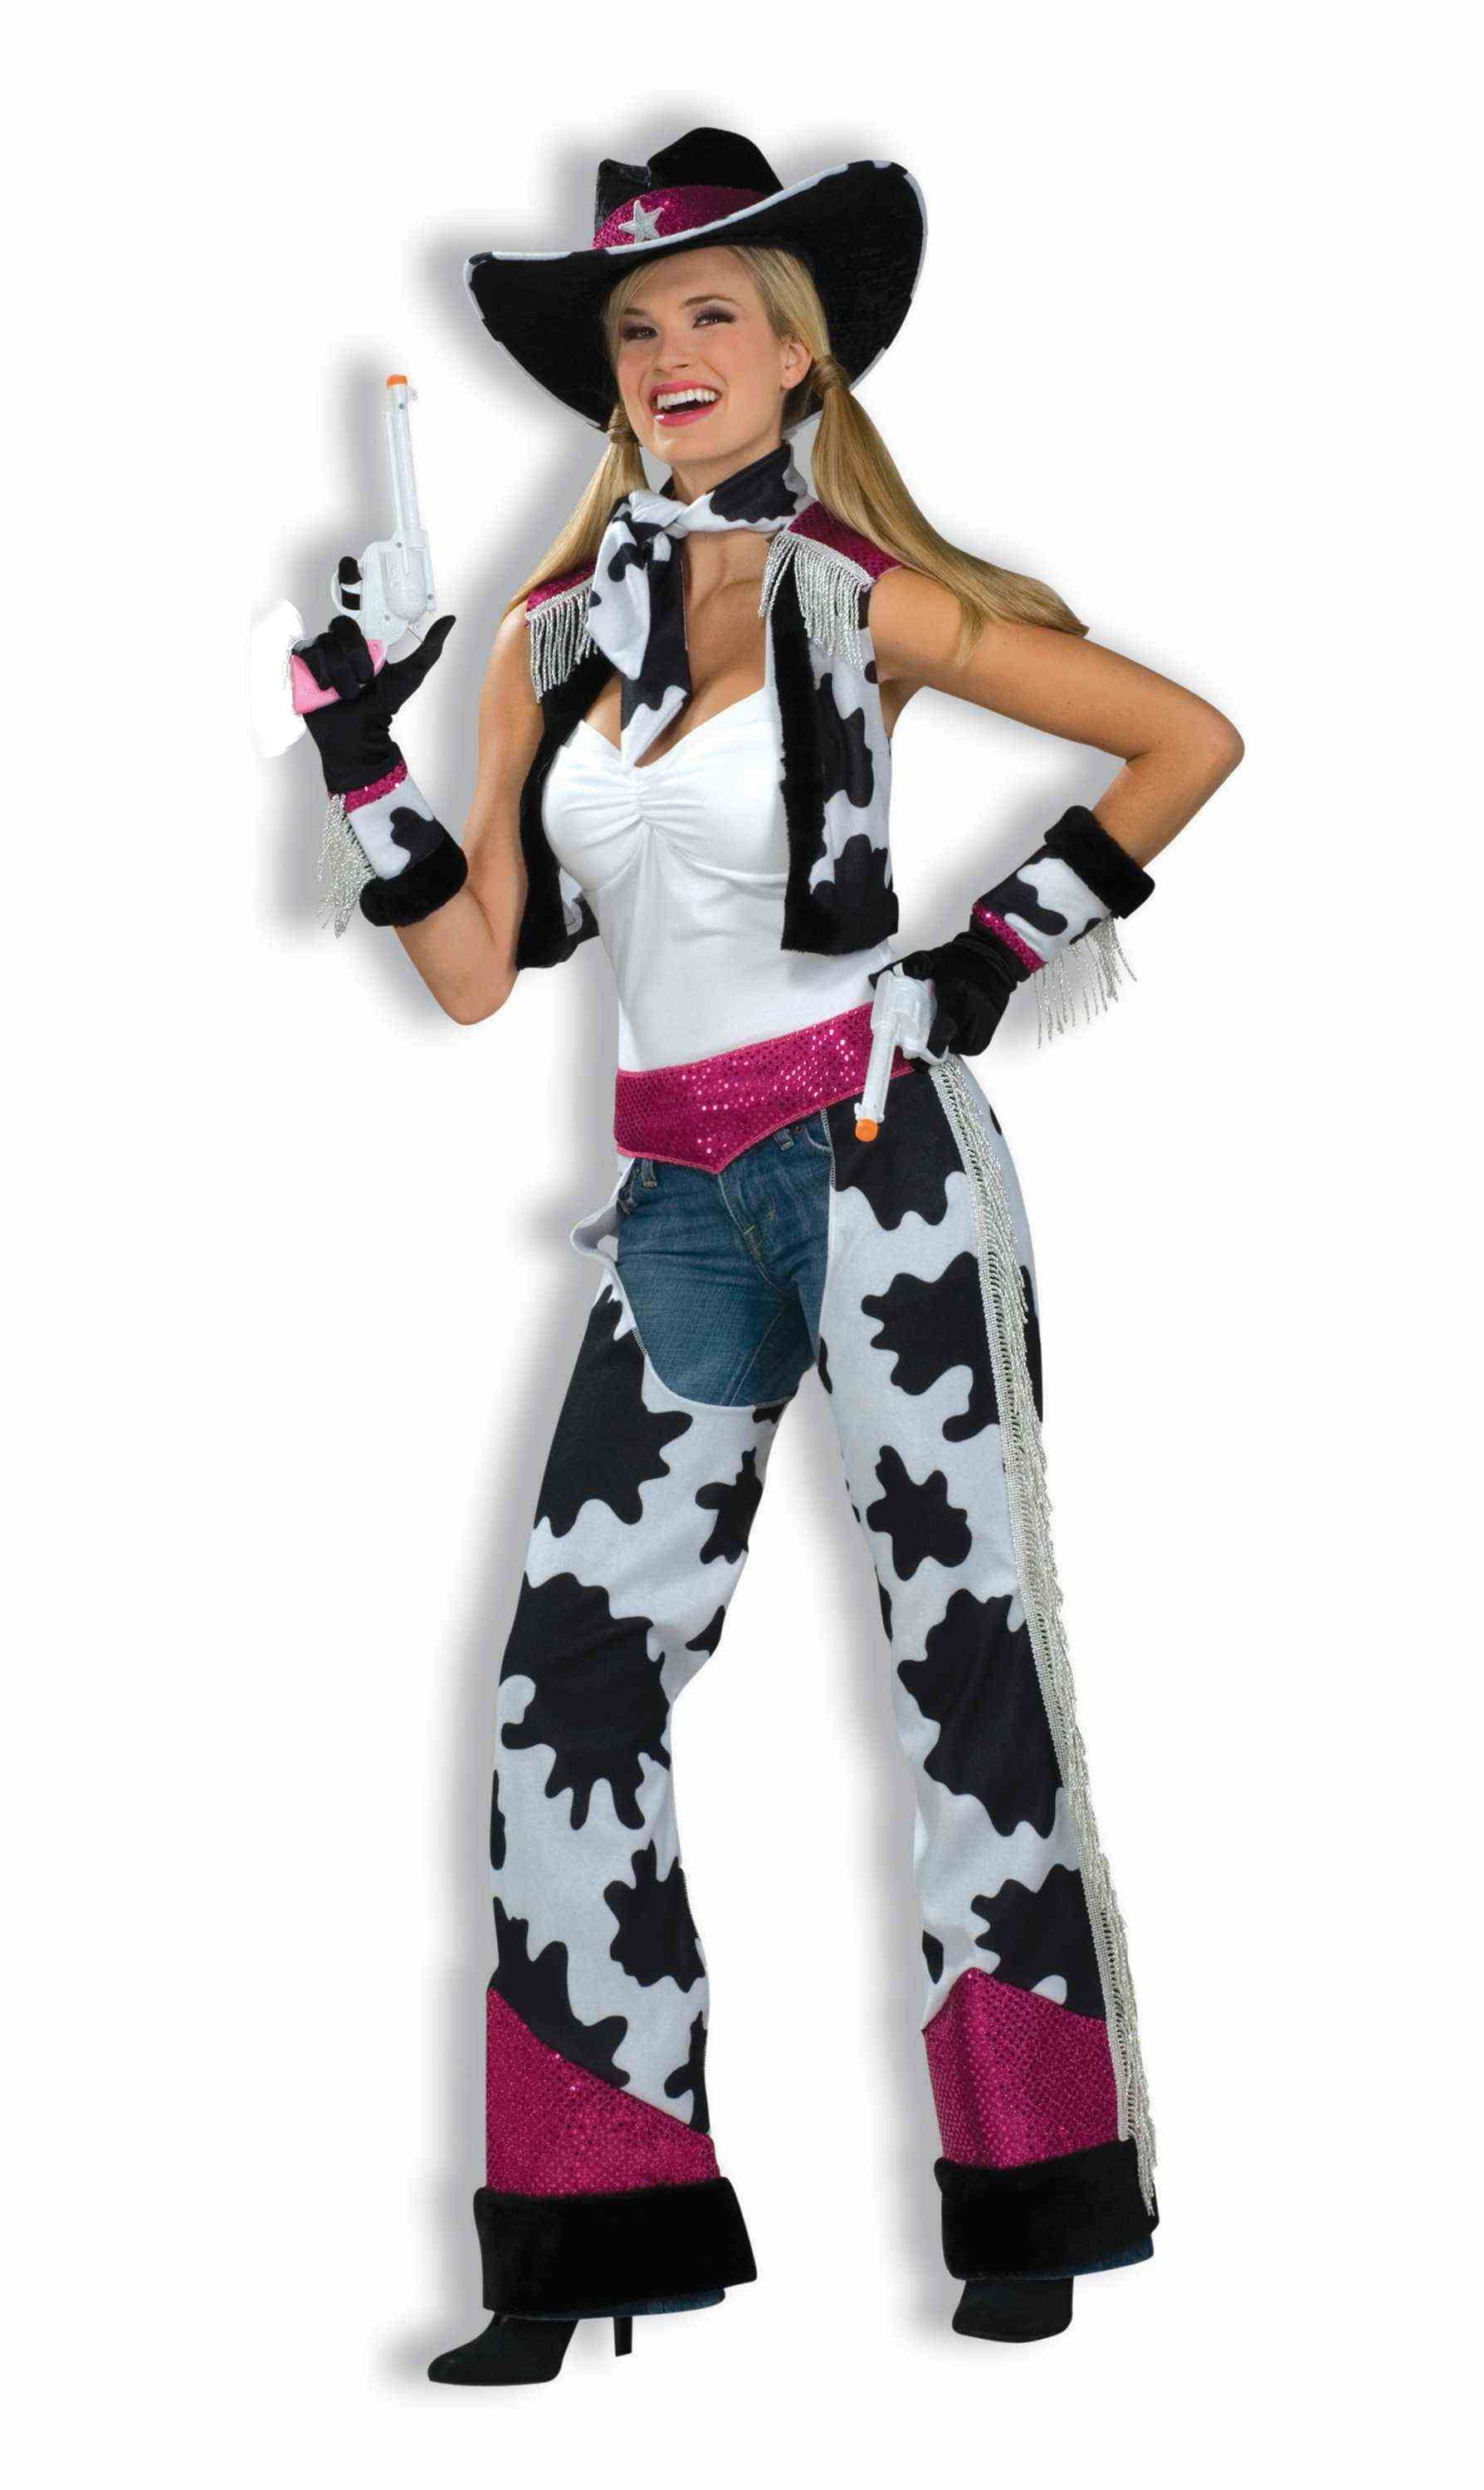 Glamour Cowgirl Cowboy Ladies Costume | Stampede outfit, Cowgirl ...